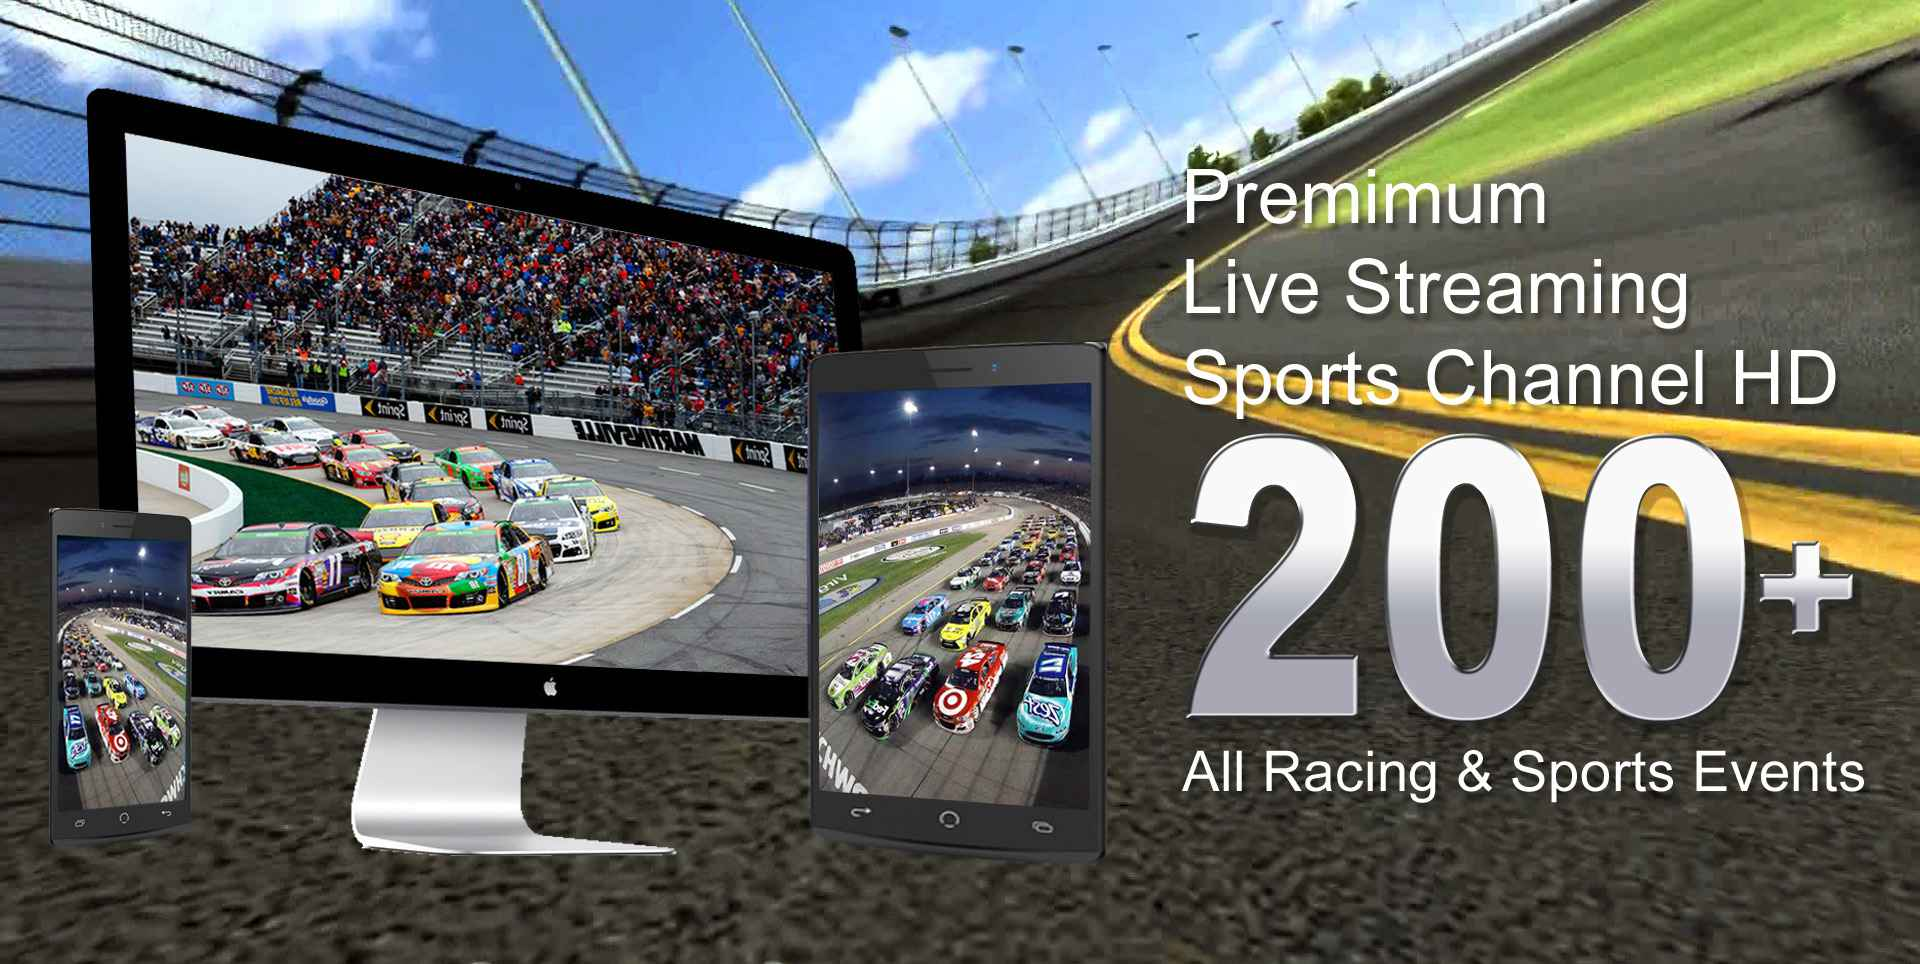 How to watch NASCAR Live in UK and Europe